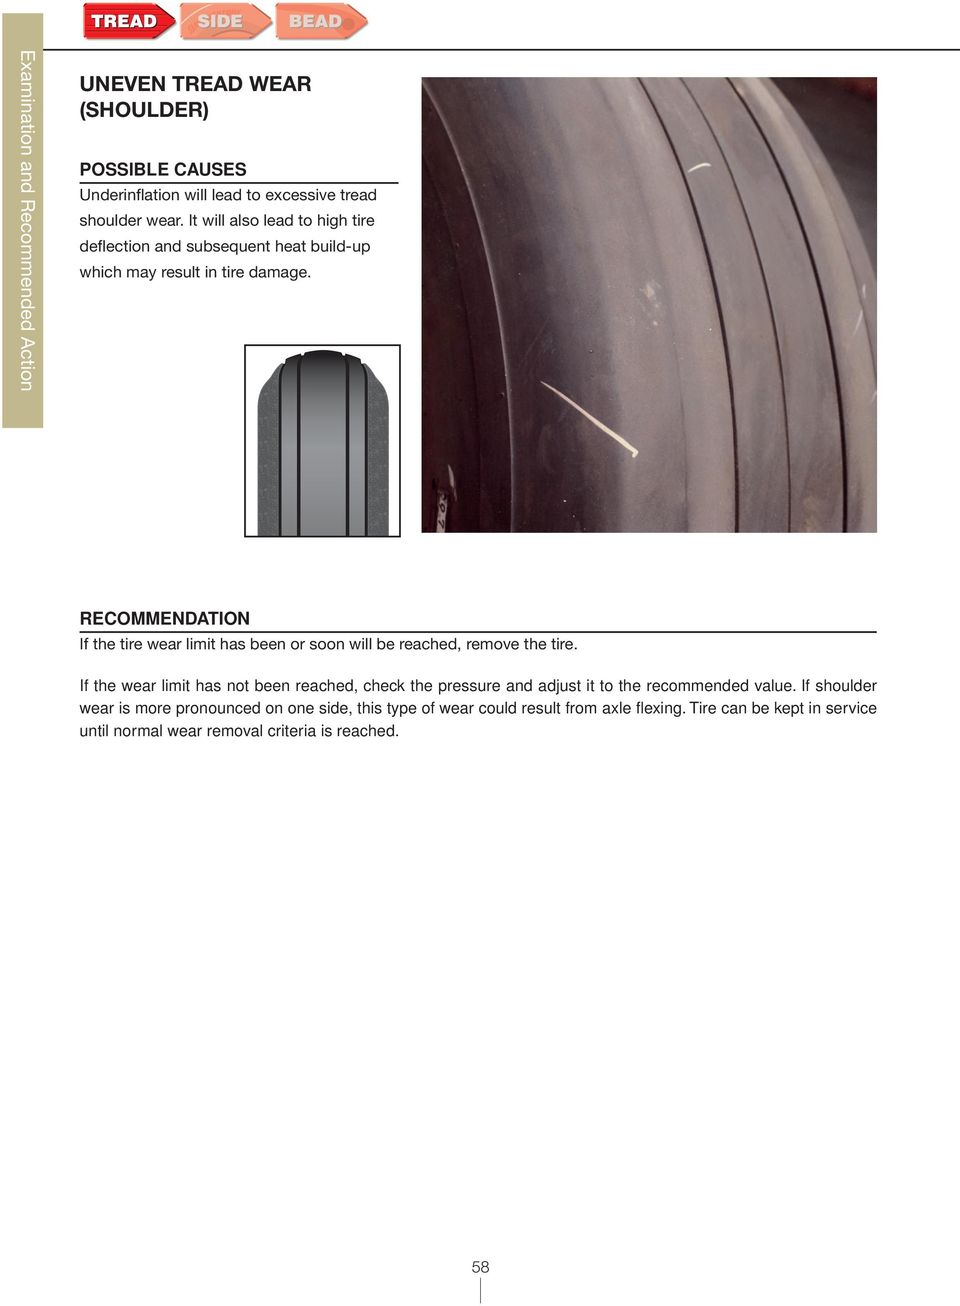 If the tire wear limit has been or soon will be reached, remove the tire